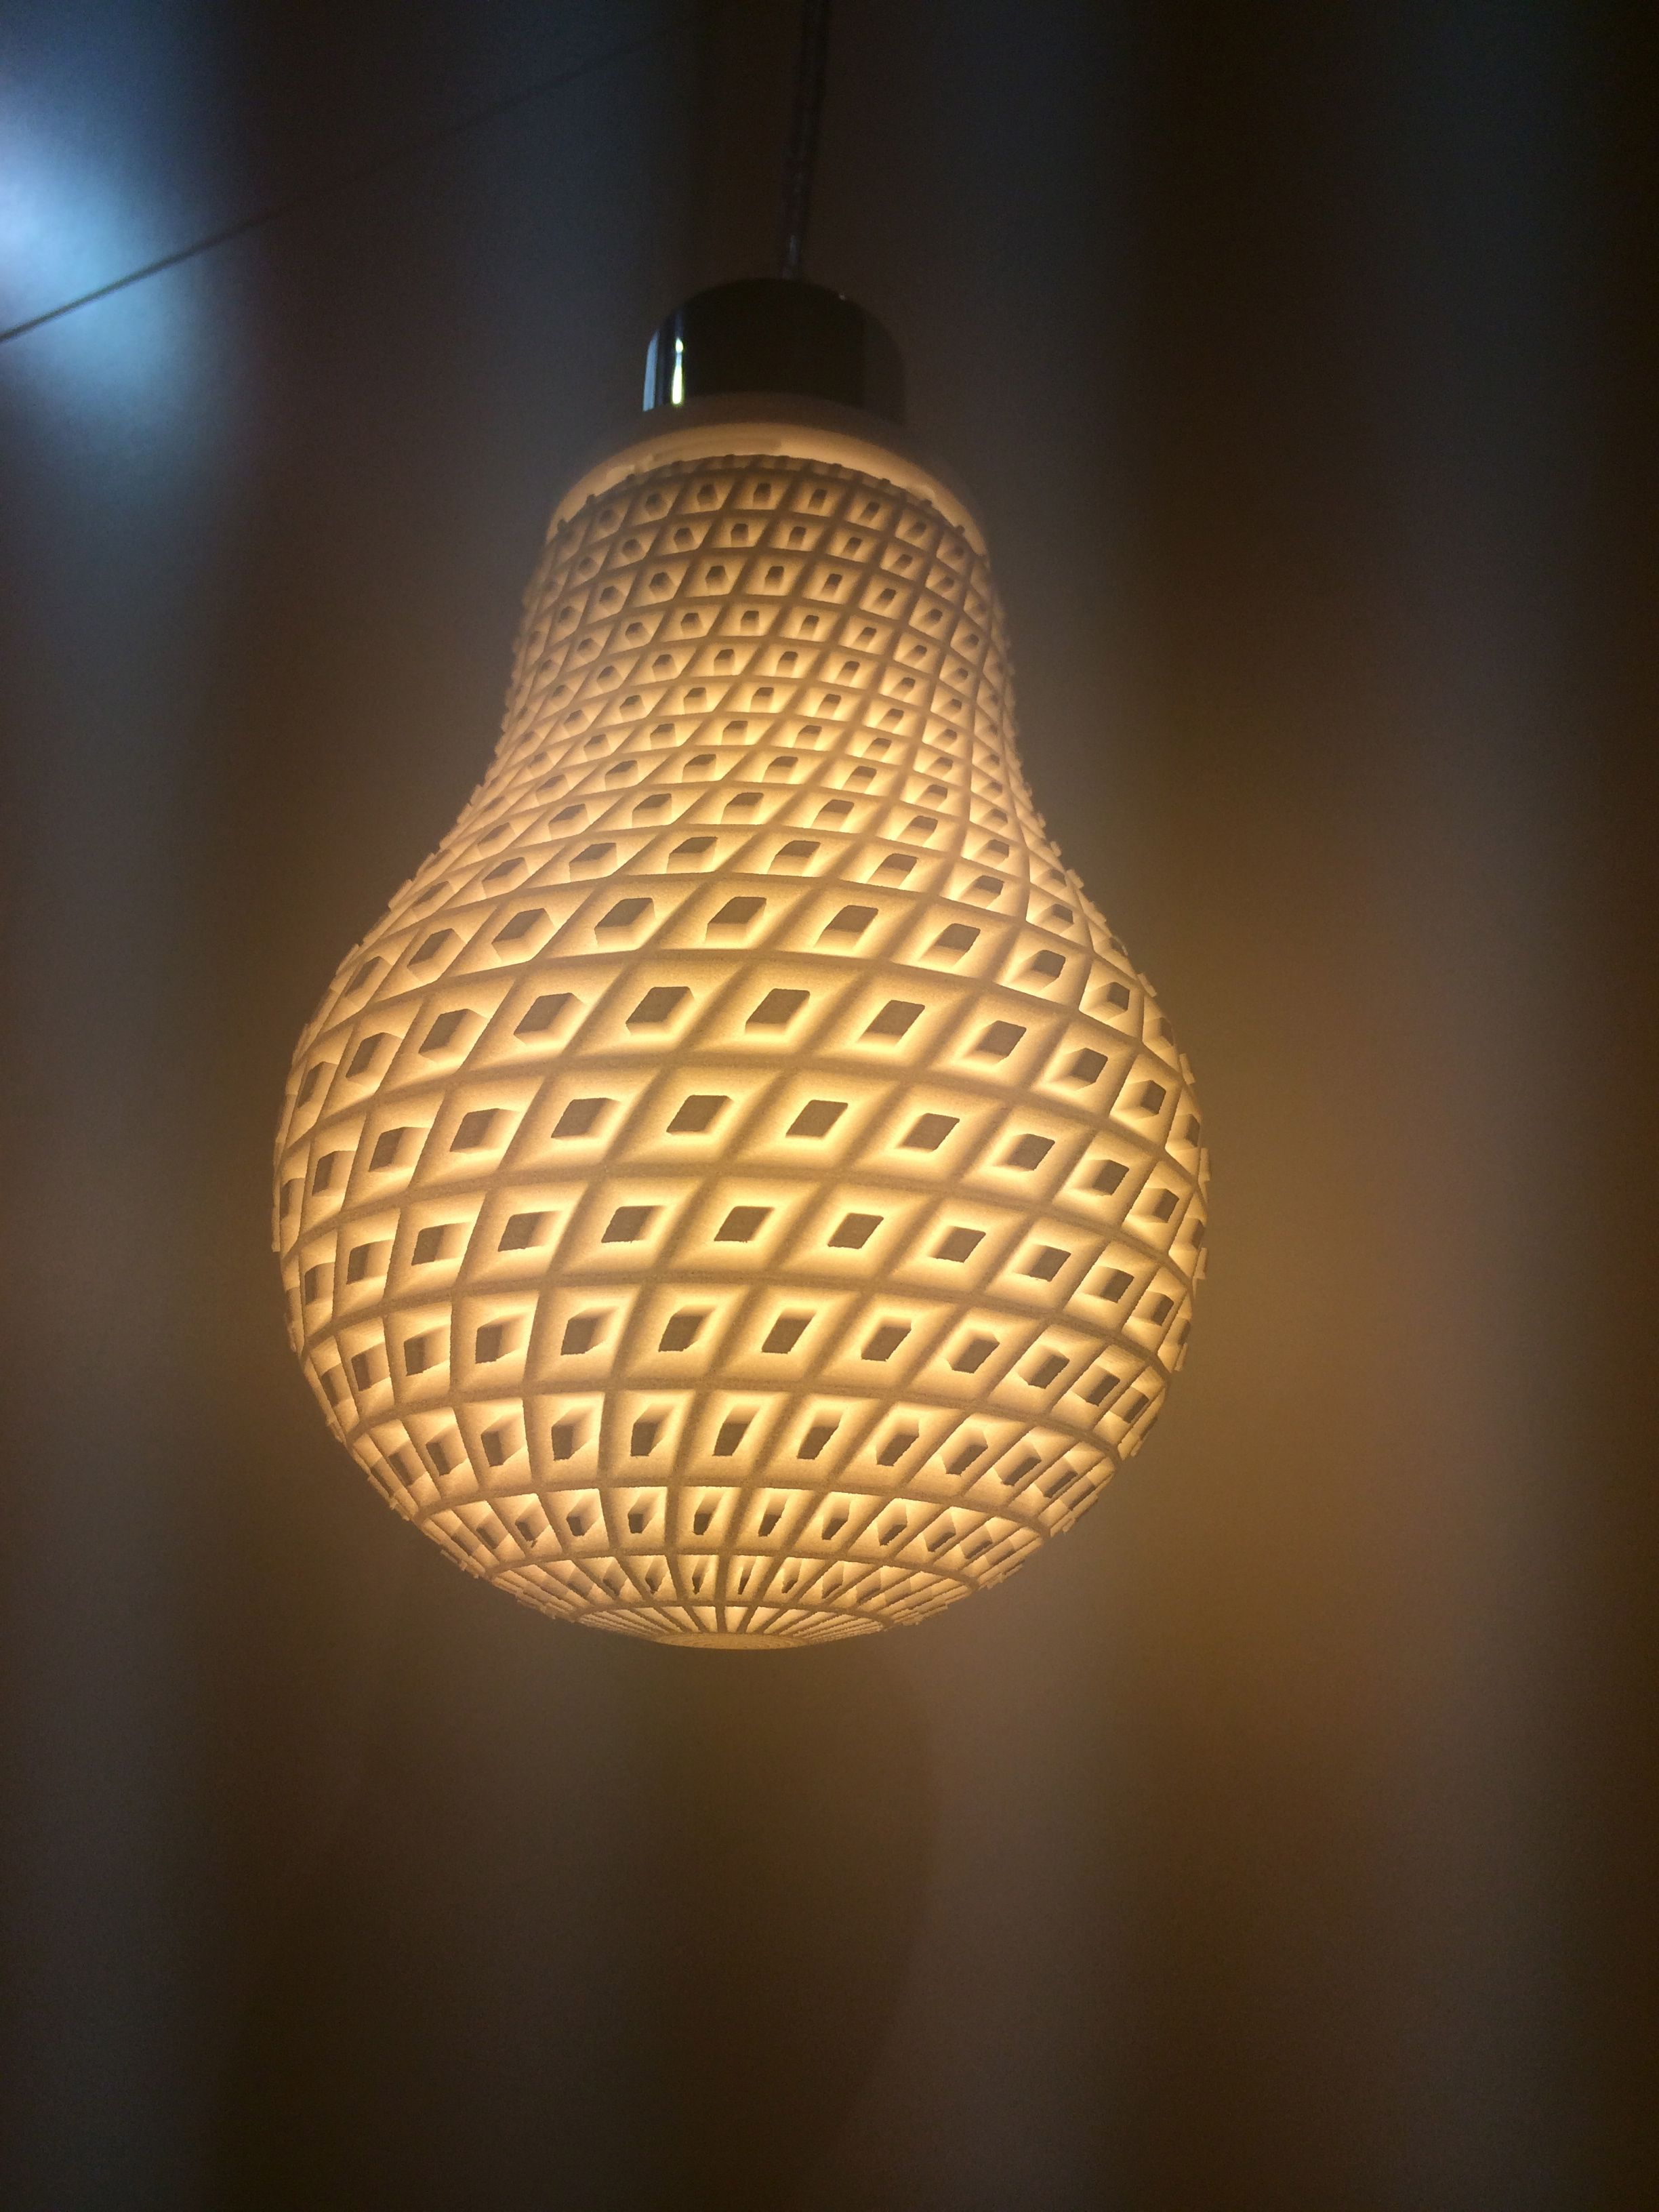 3d Printed Light Shade 3dprintedlightning Architectuur